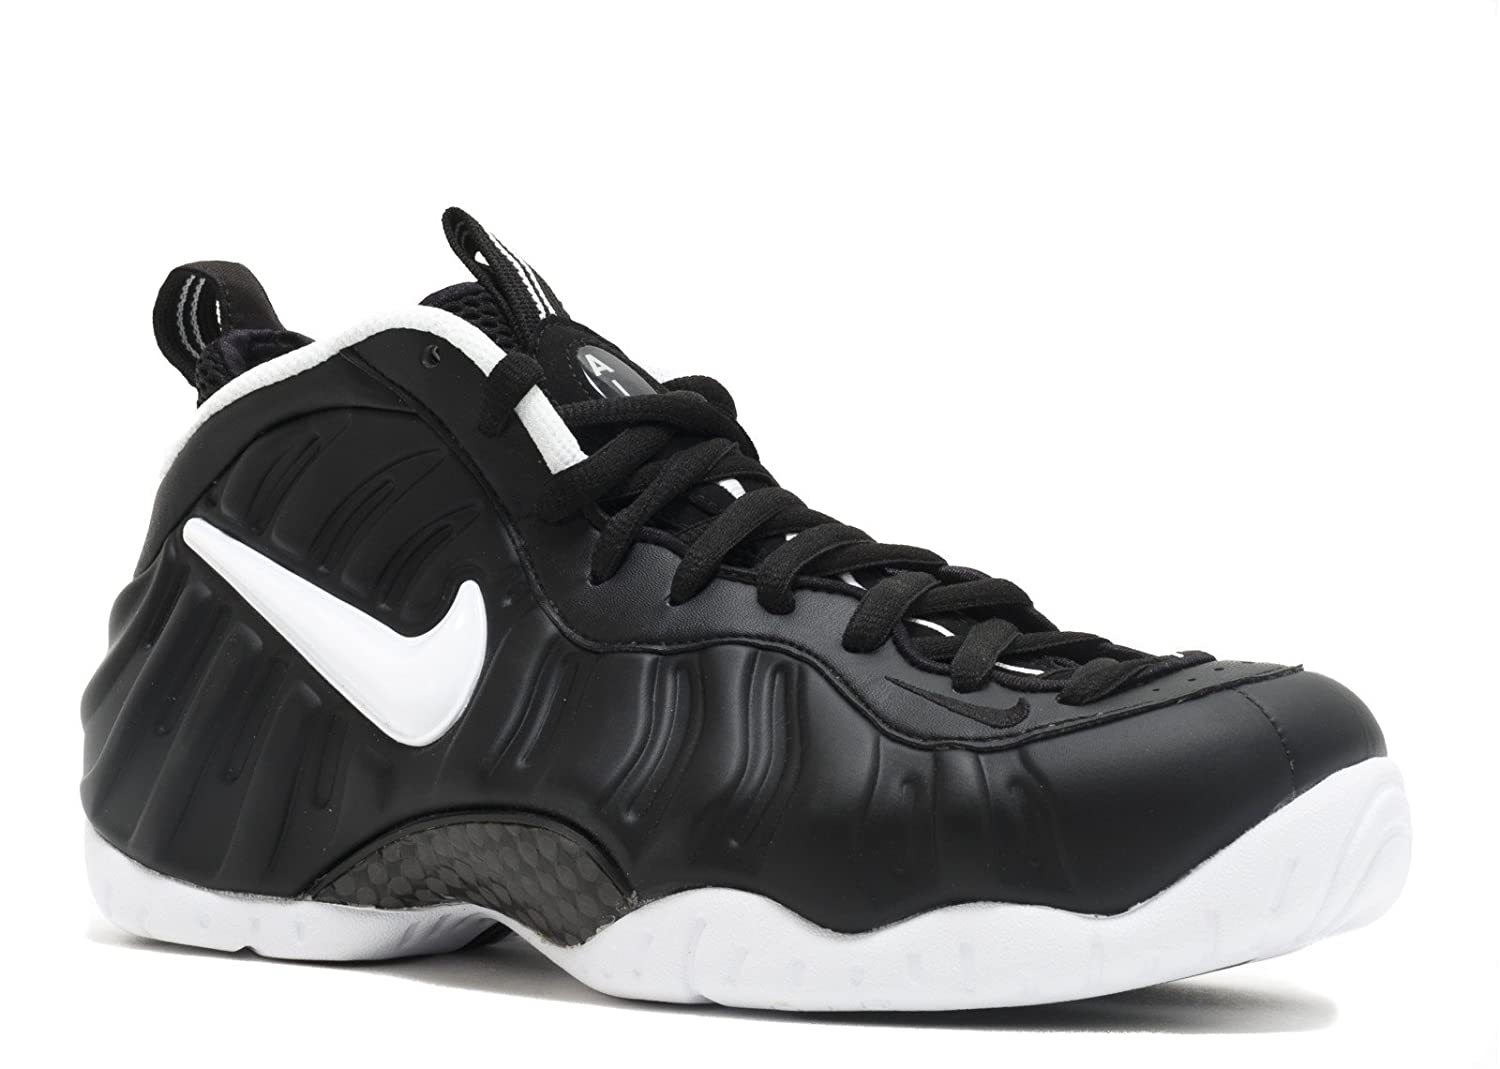 [NIKE - ナイキ] AIR FOAMPOSITE PRO 'DR. DOOM' - 624041-006 - SIZE 13 (メンズ)